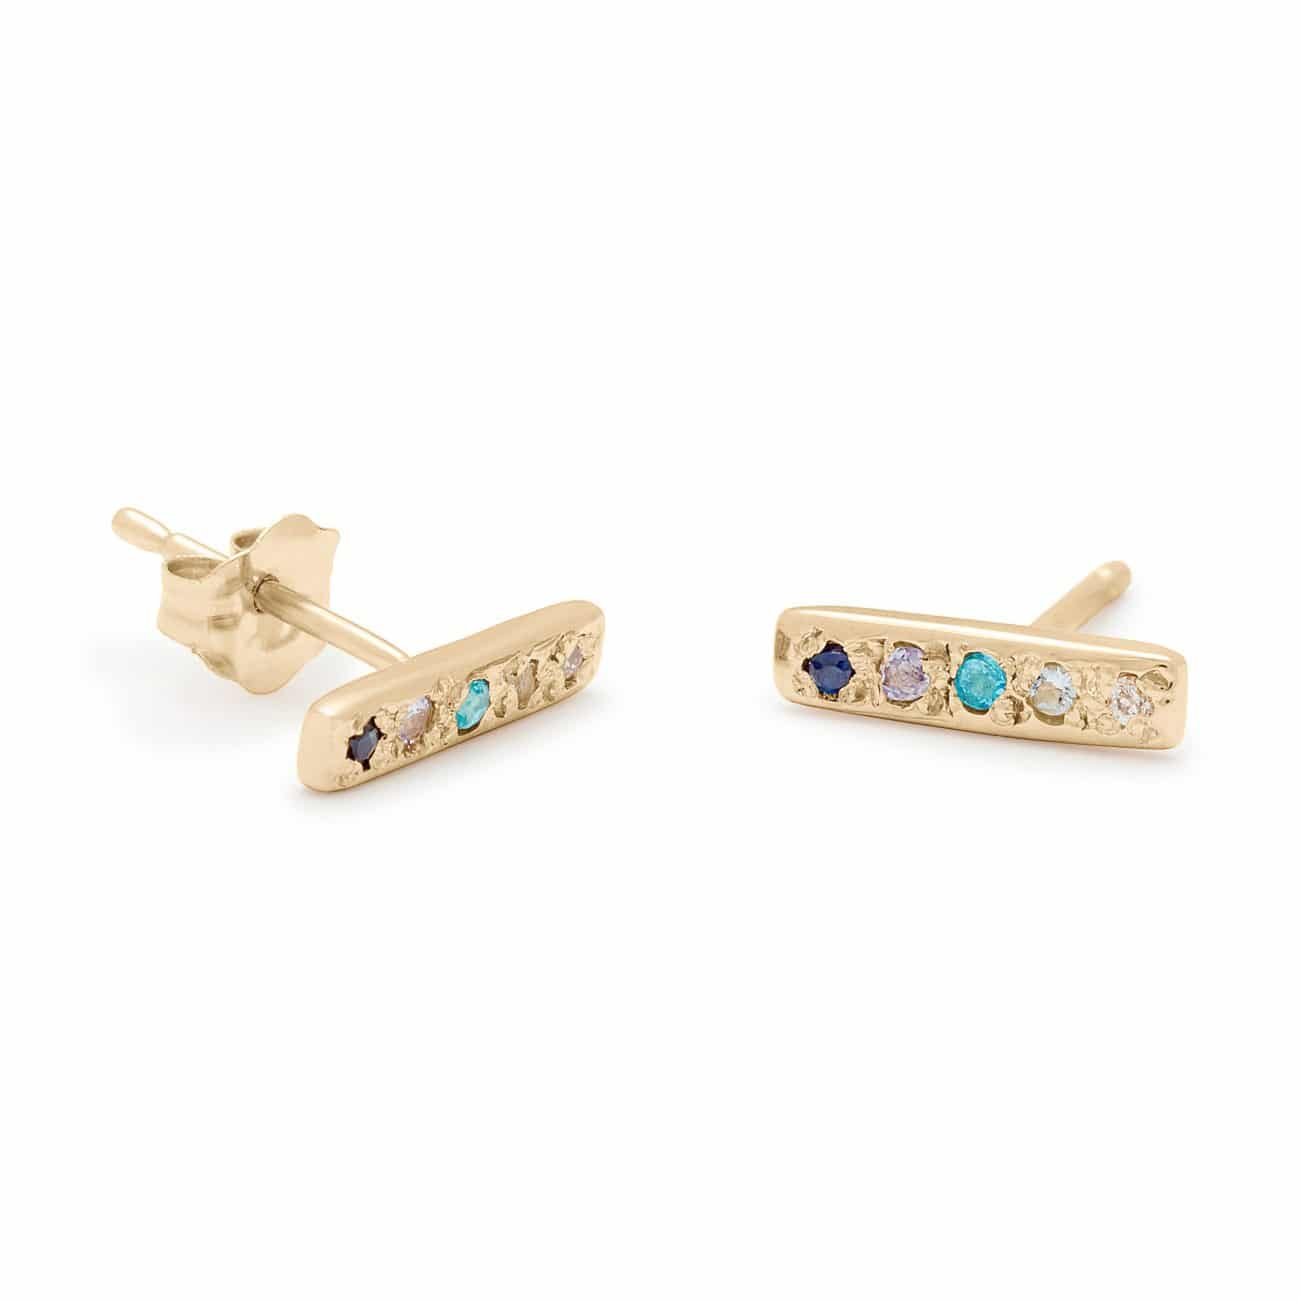 Skinny Bar Stud Earrings - in 14k Yellow Gold